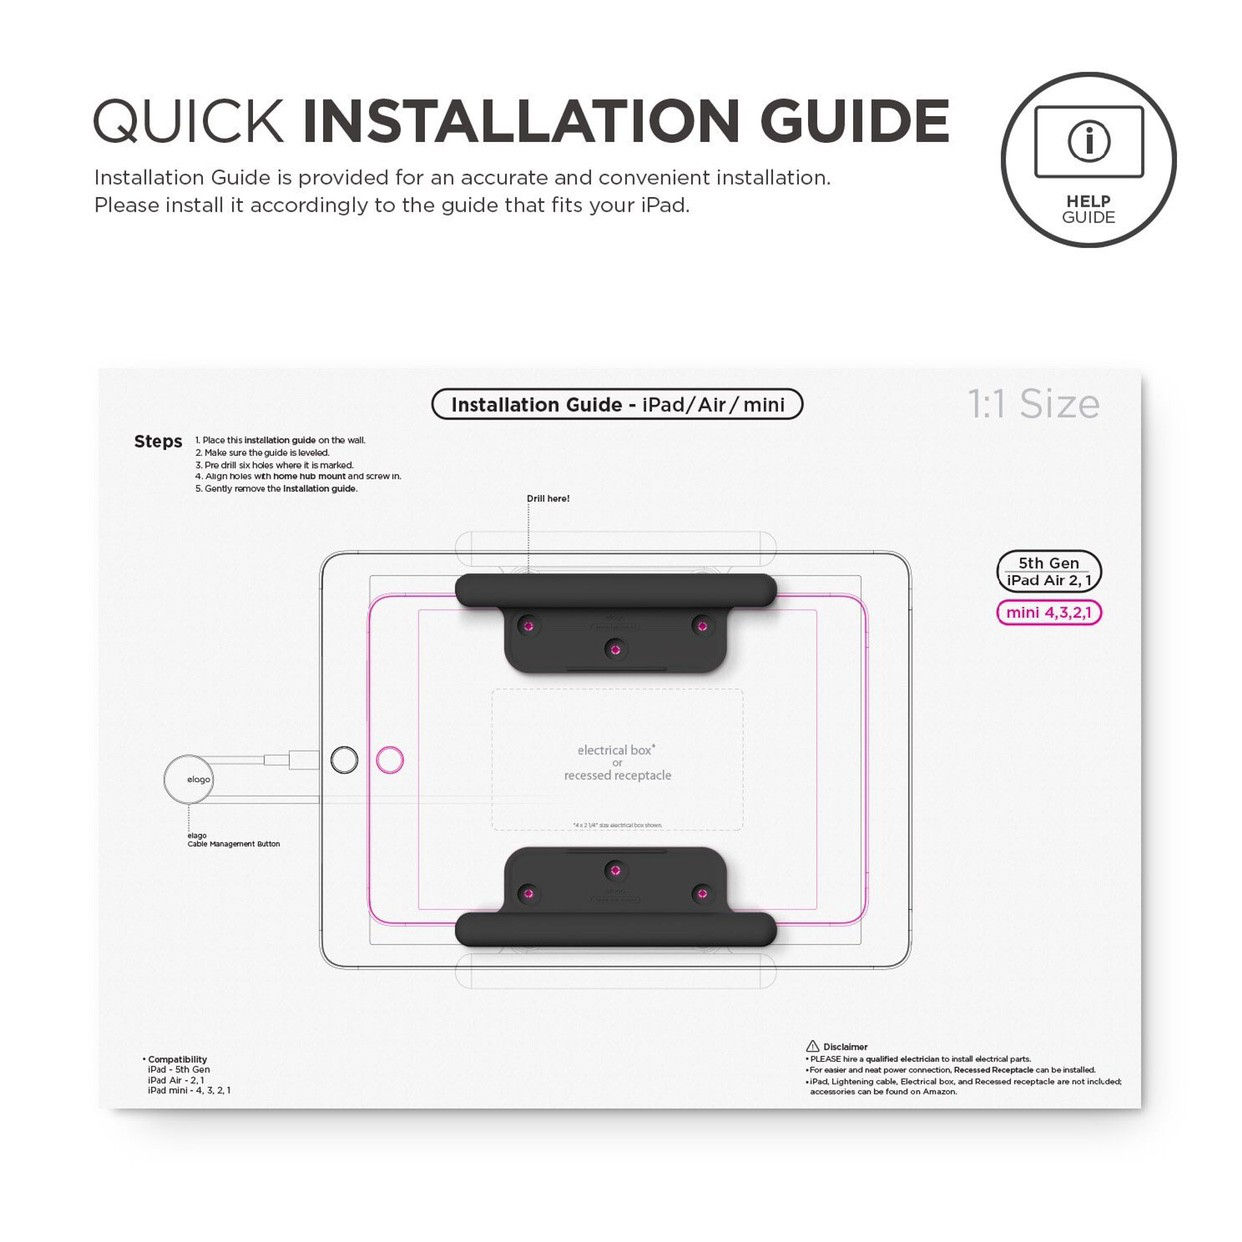 Wall Mounted Ipad Hub Smart Home Thoughts Medium Installing Lighting How To Install A New Electrical Installation Was Really Easy And With The Being Close An Existing Power Point Built In Usb Socket I Able Use Short